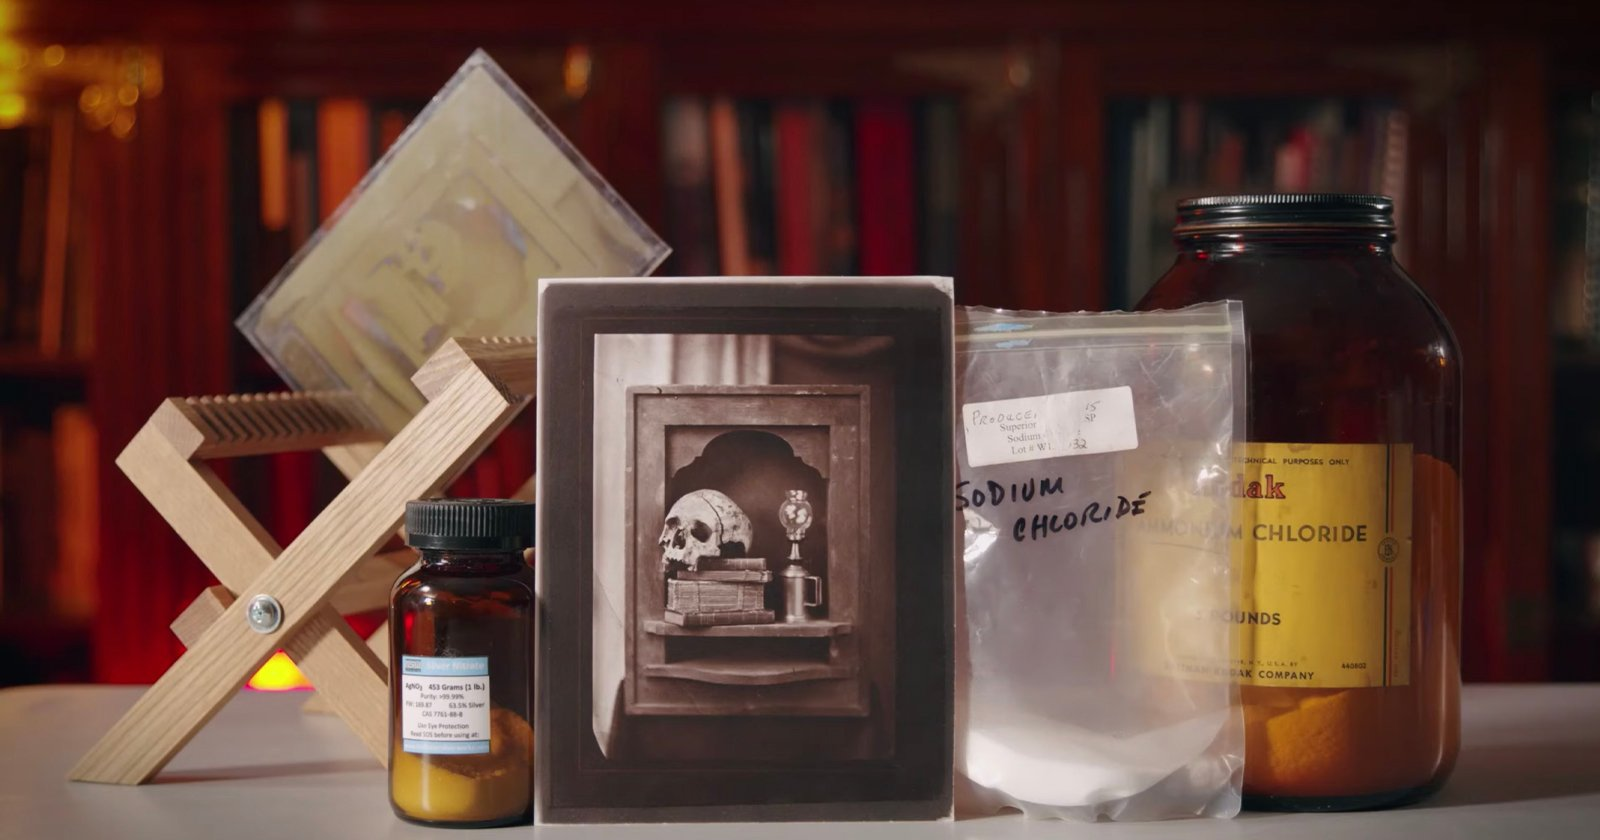 How to Make Your Own Photographic Salt Print at Home